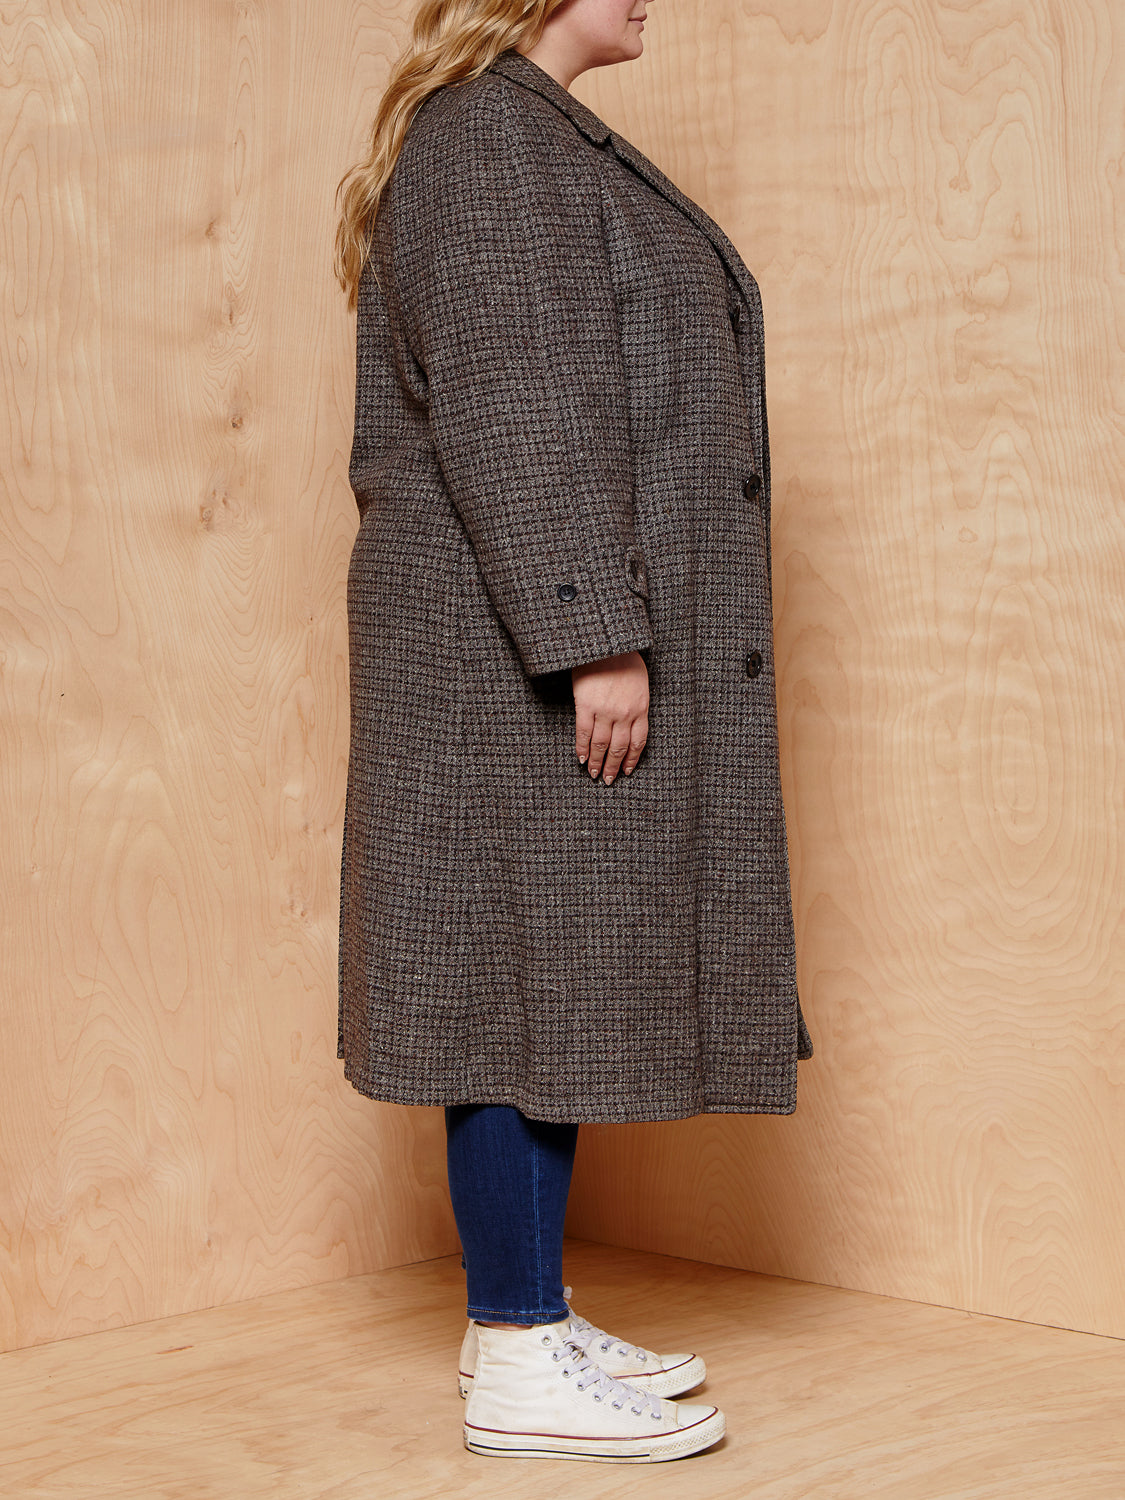 Vintage Grey/Brown Wool Coat